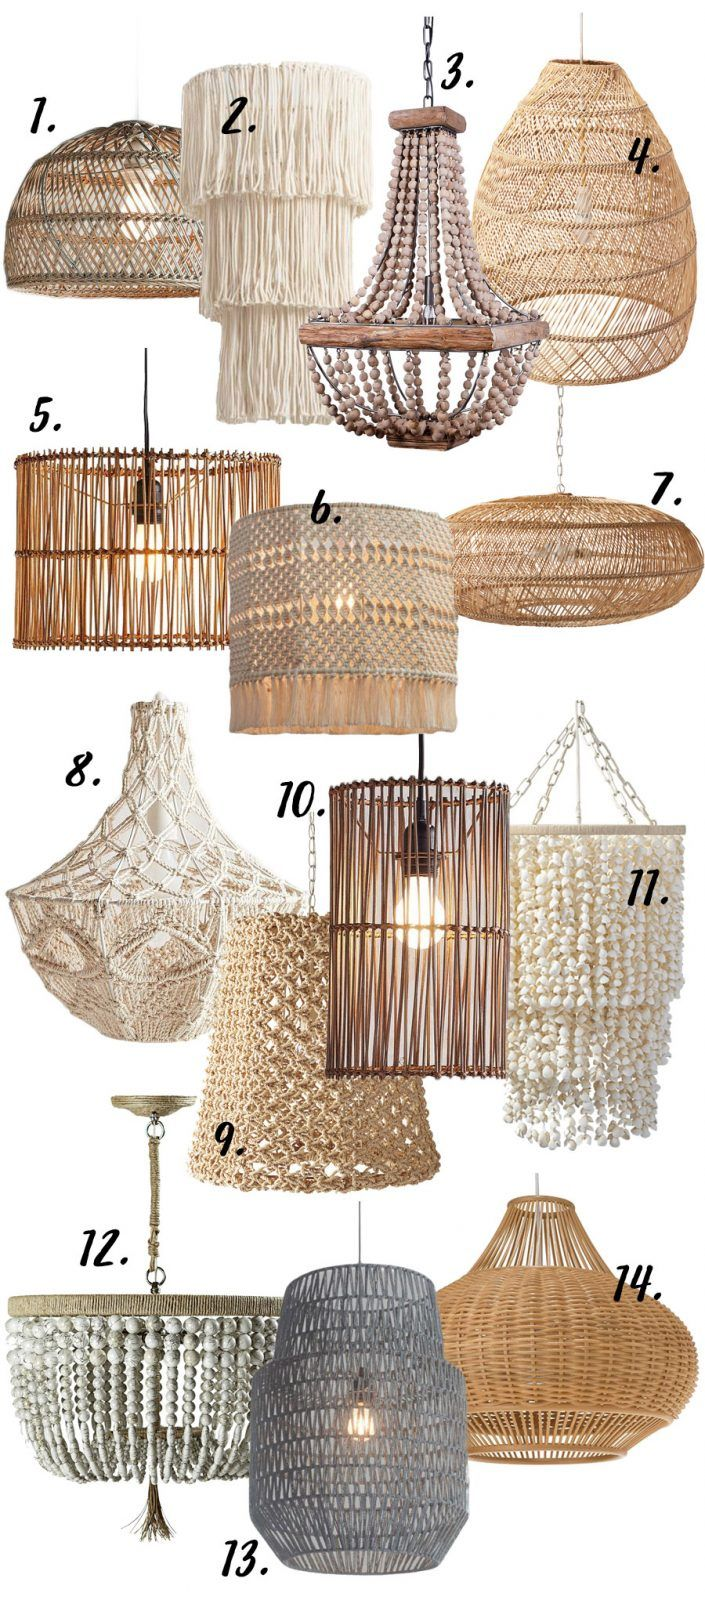 MODERN BOHO CHANDELIERS & PENDANT LIGHTS – 14 CHIC OPTIONS